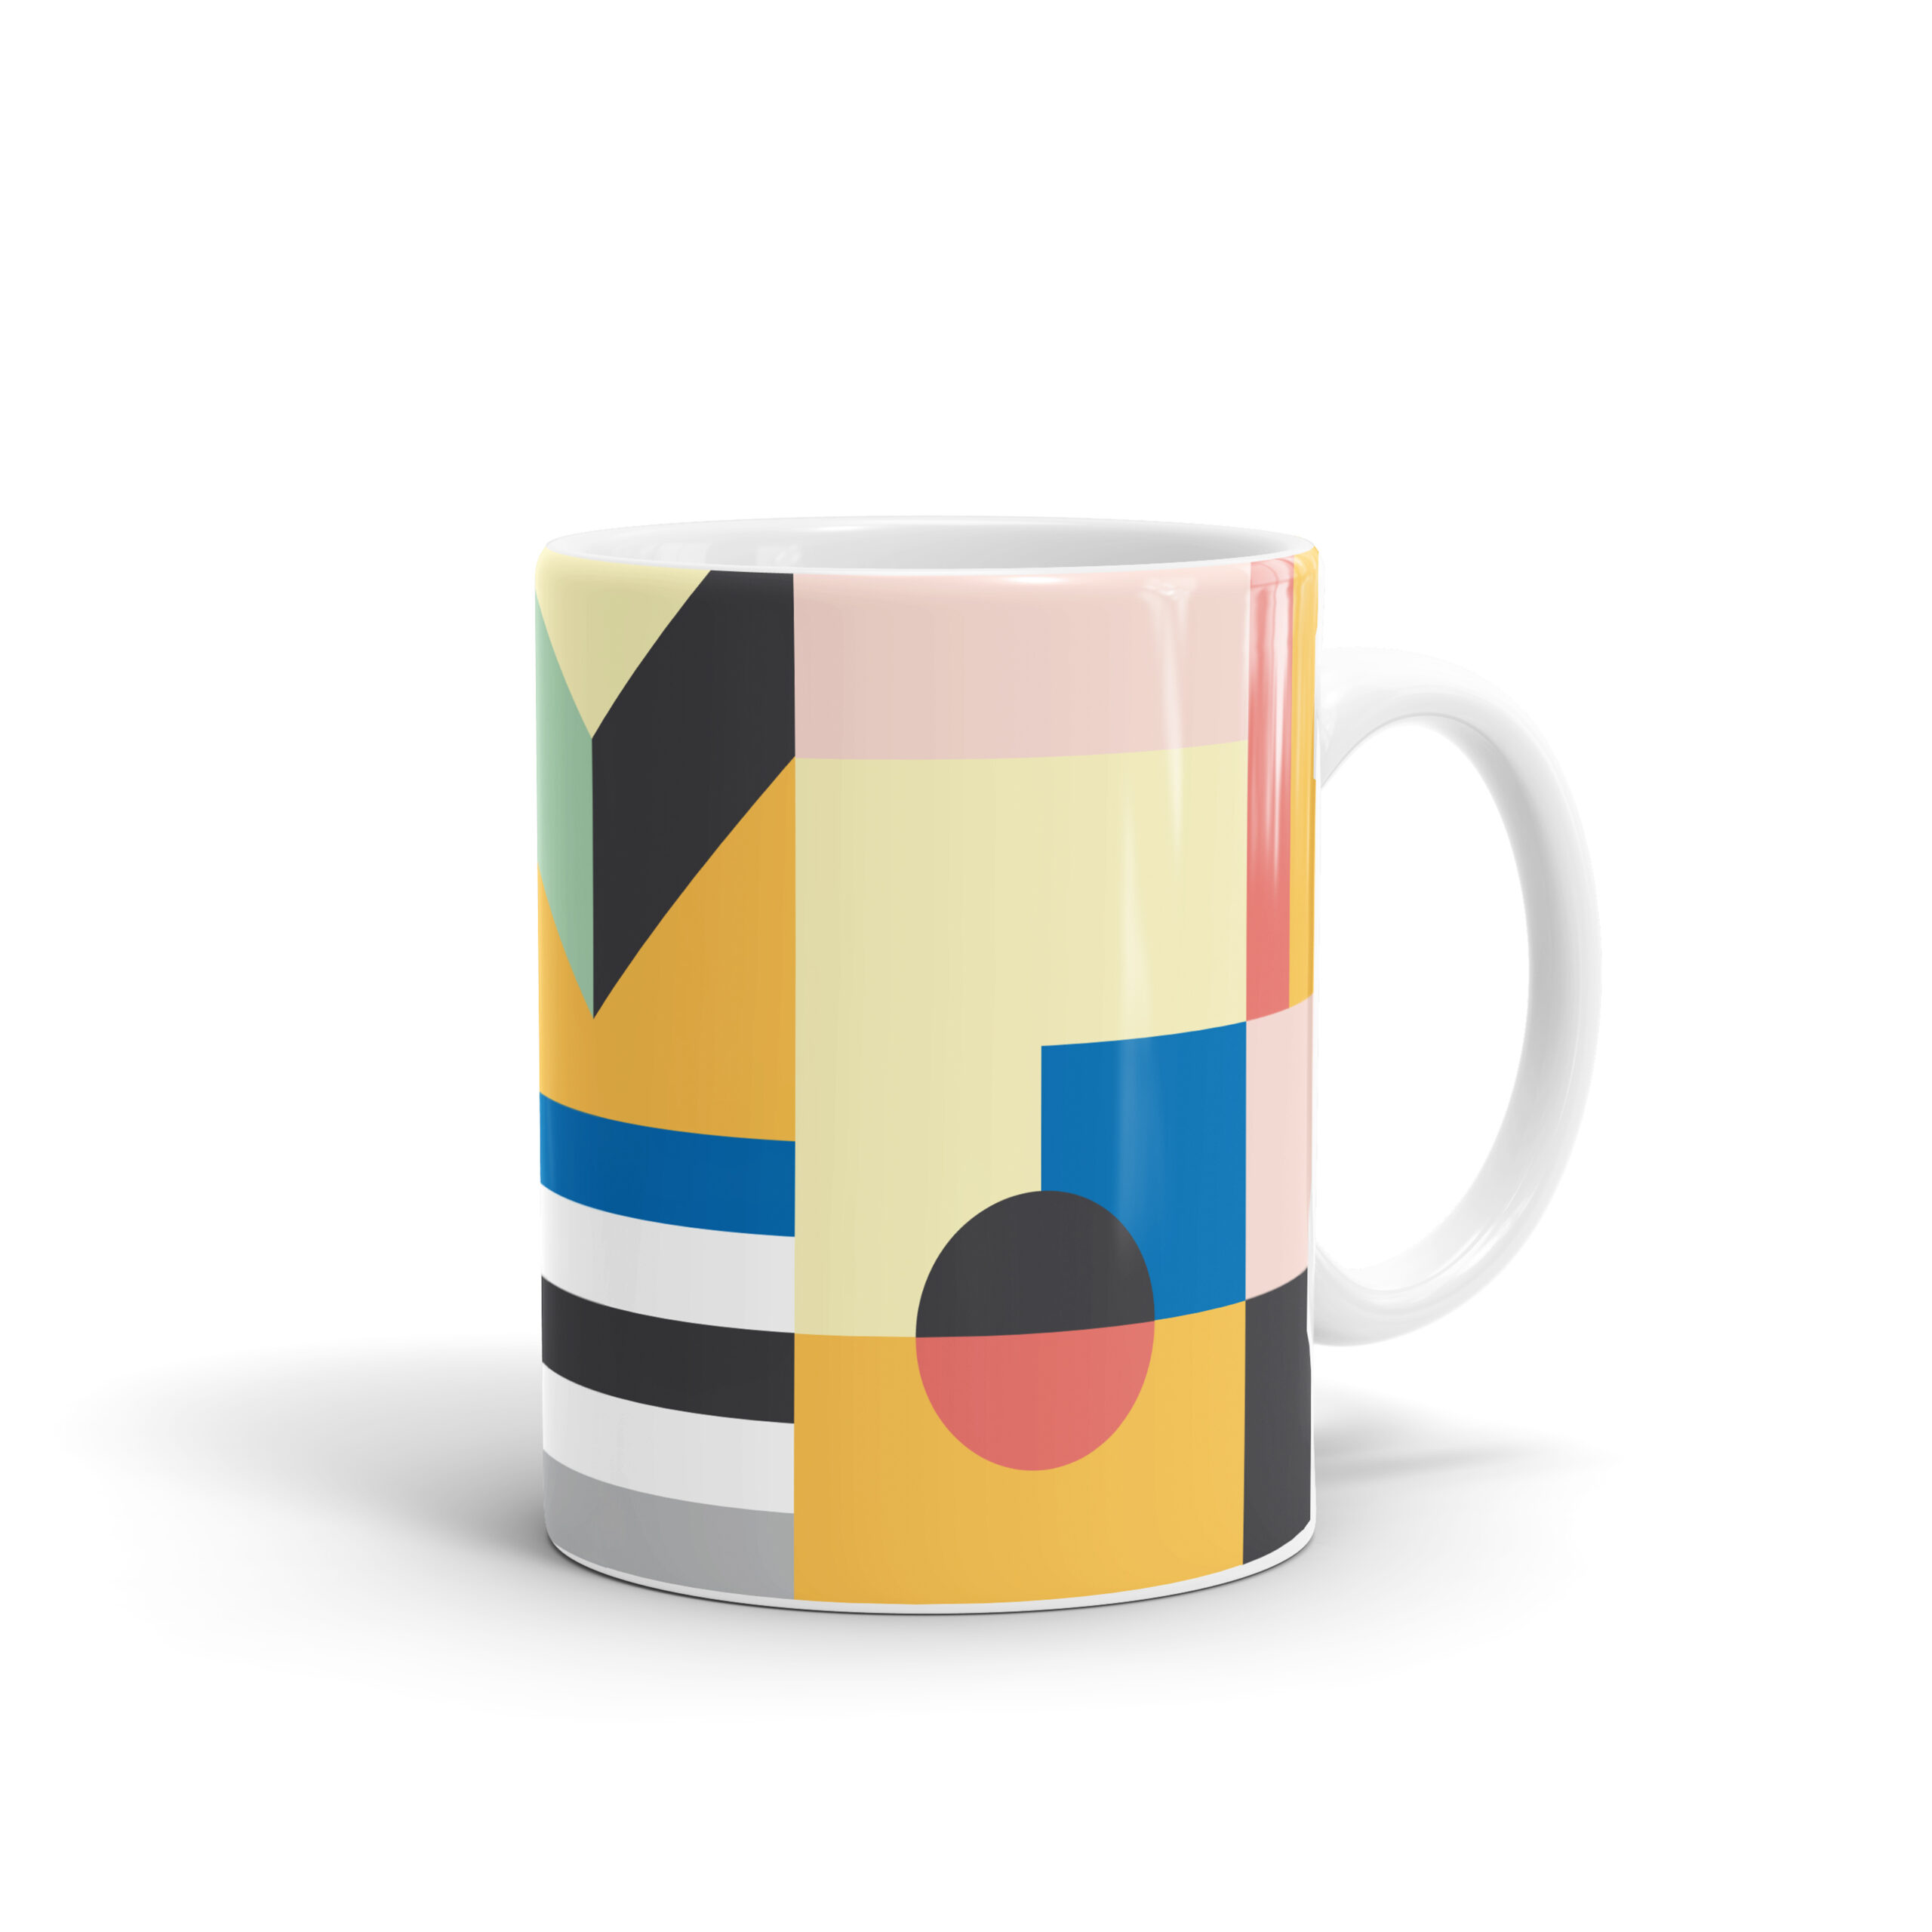 Pastel Pattern Mug by WEEW Smart Design